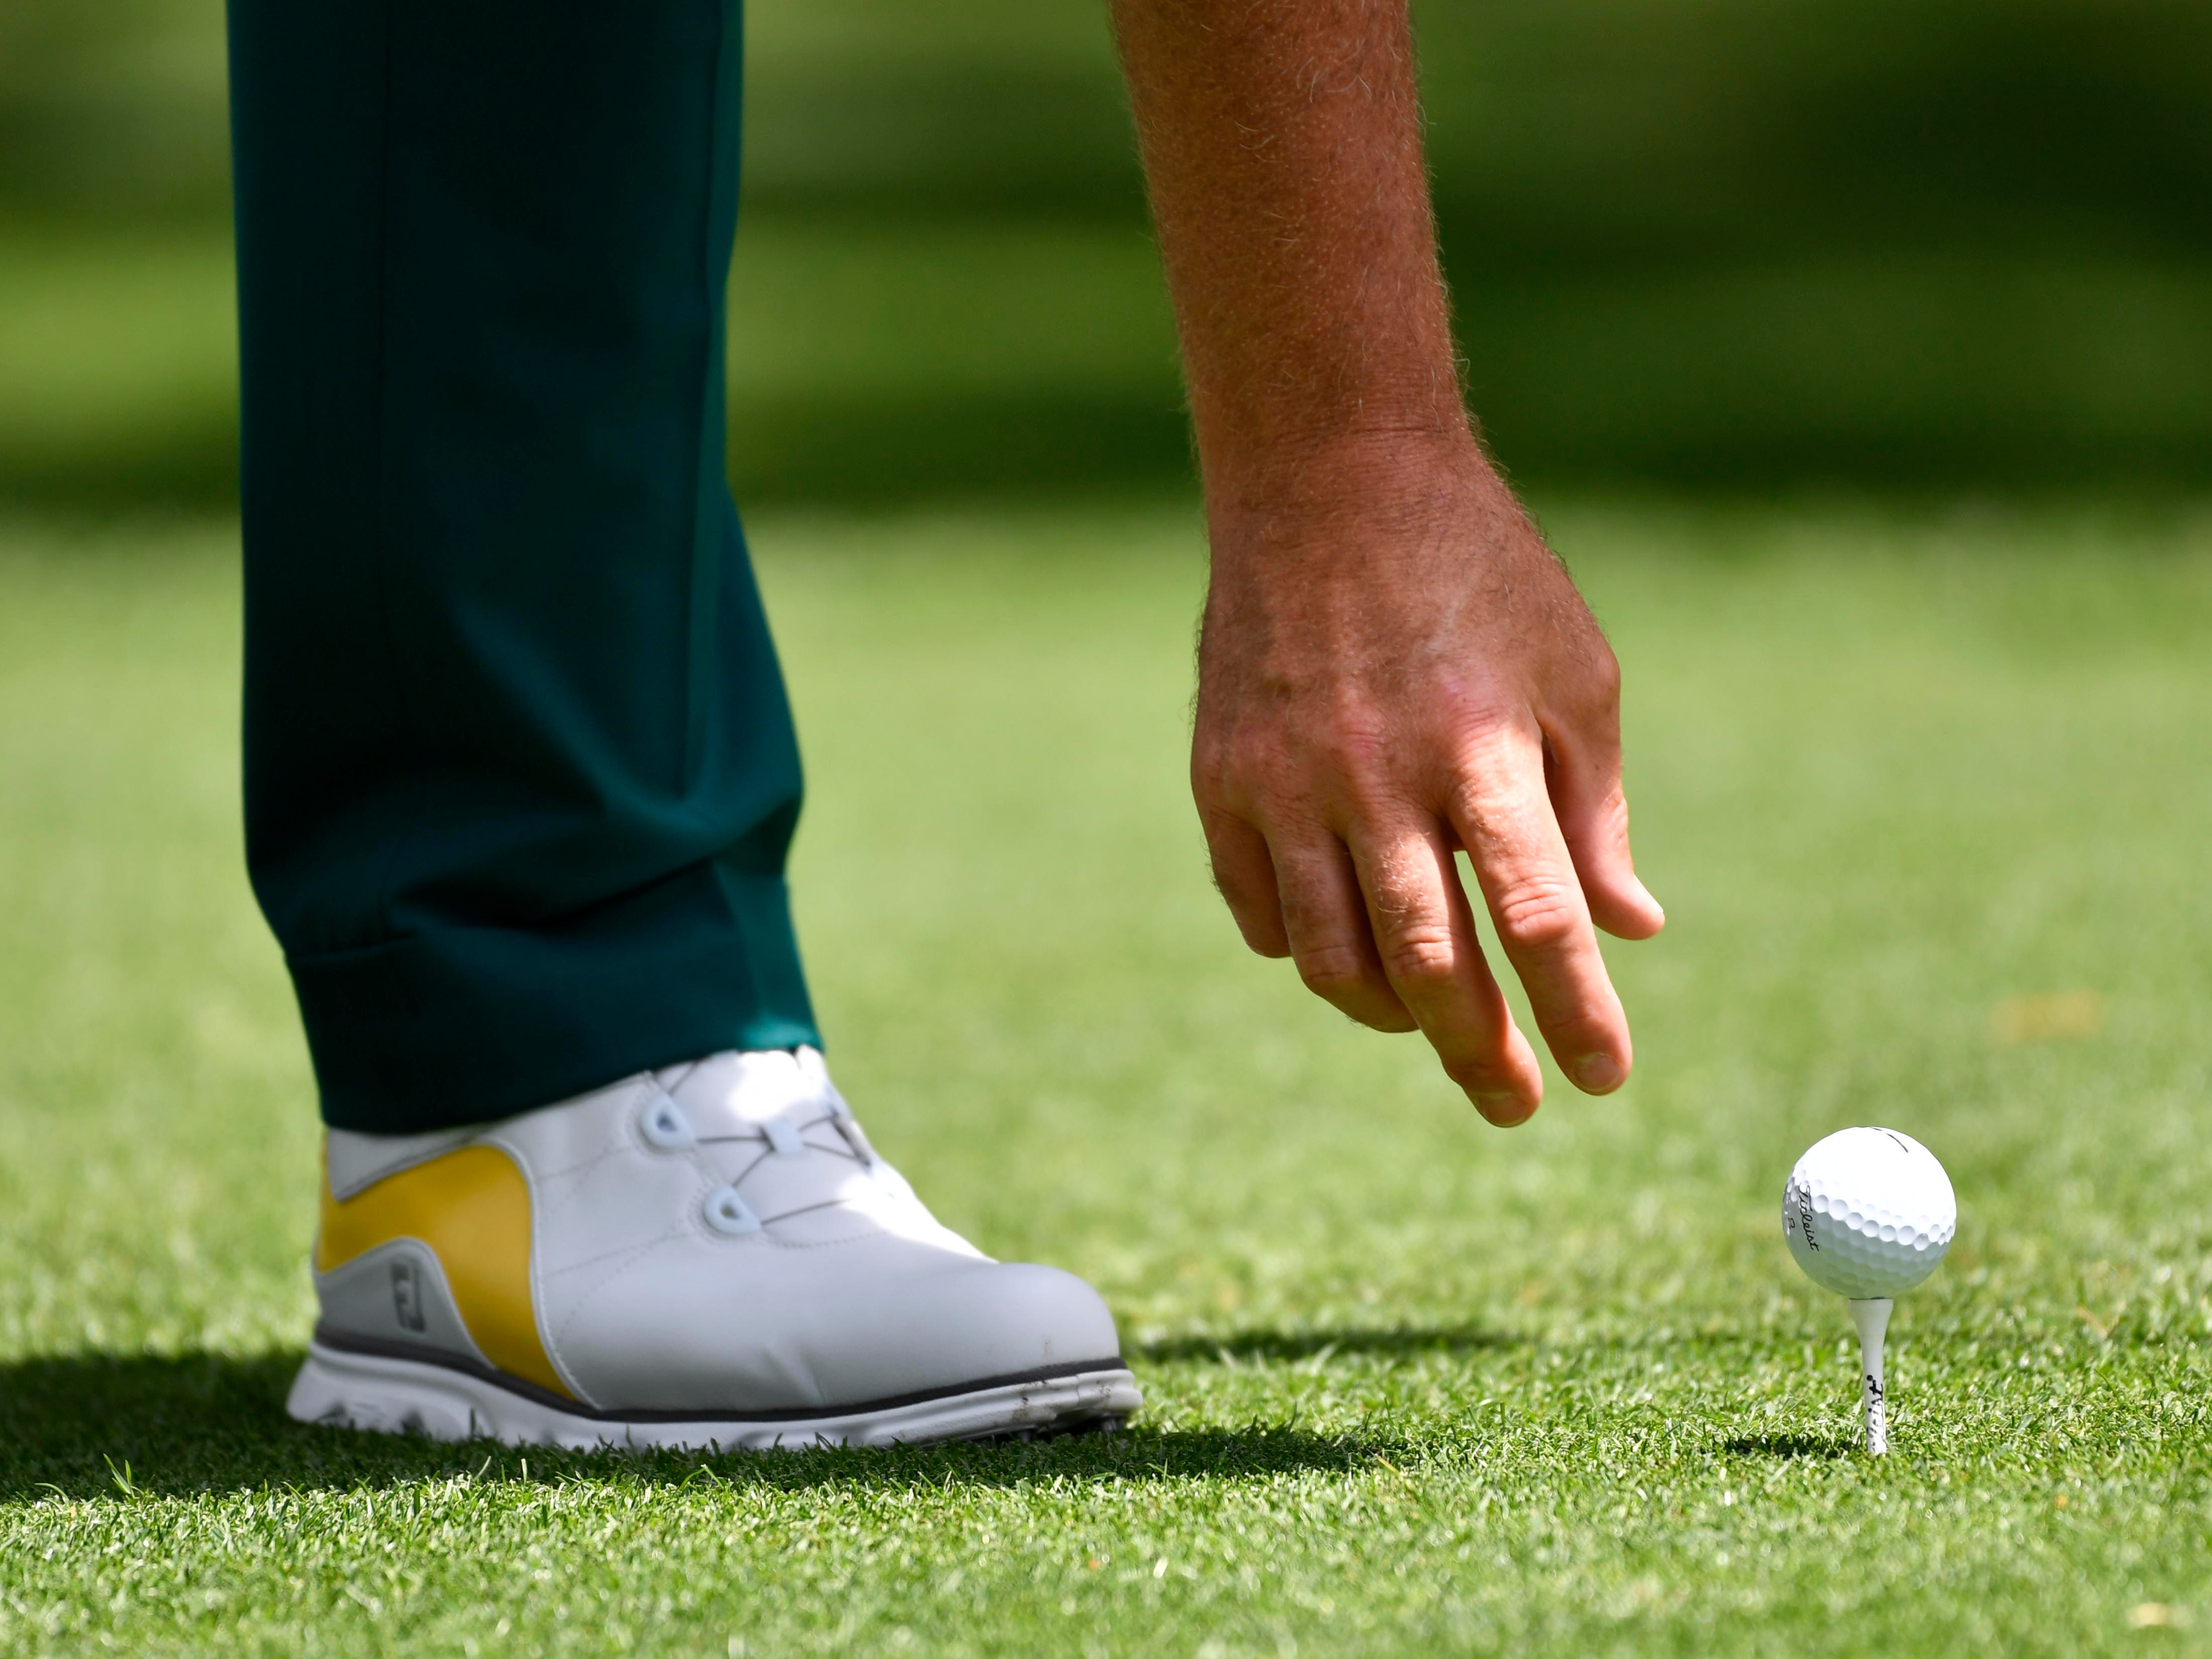 Ian Poulter places his ball on the tee during the first round of the Masters.